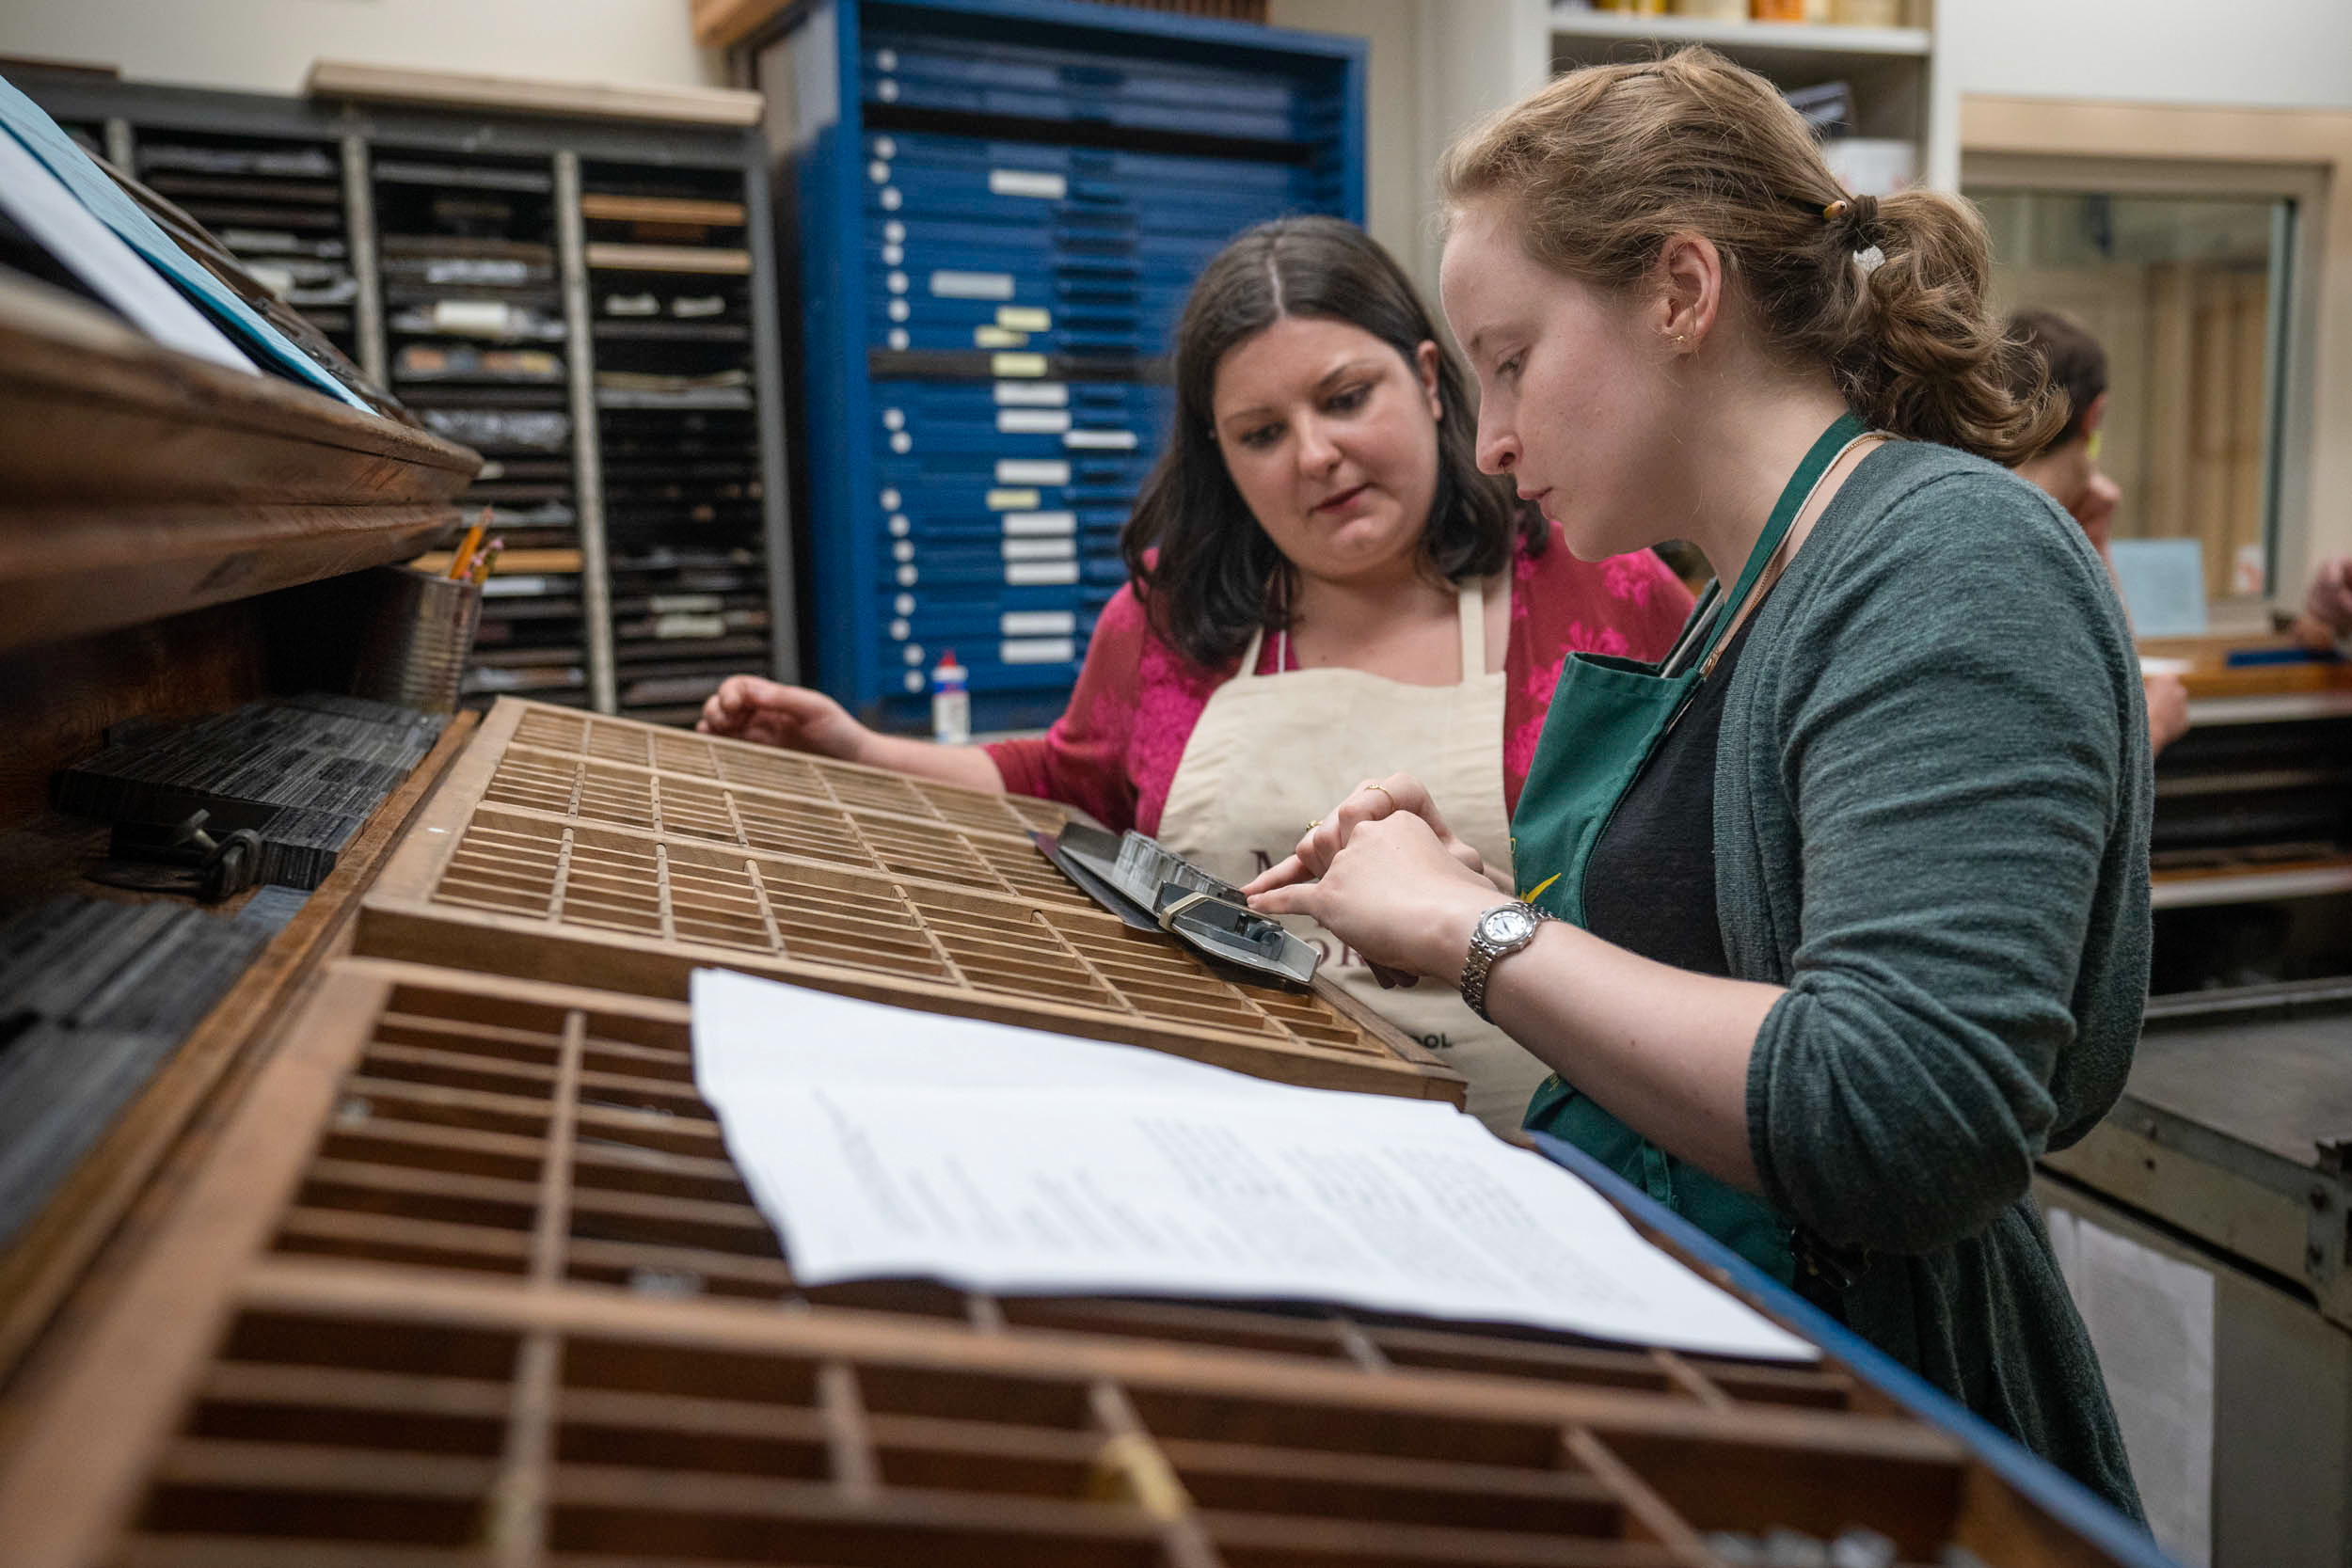 Course assistant Suzanne Glémot shows Amanda Rogus how the pieces of type fit together.